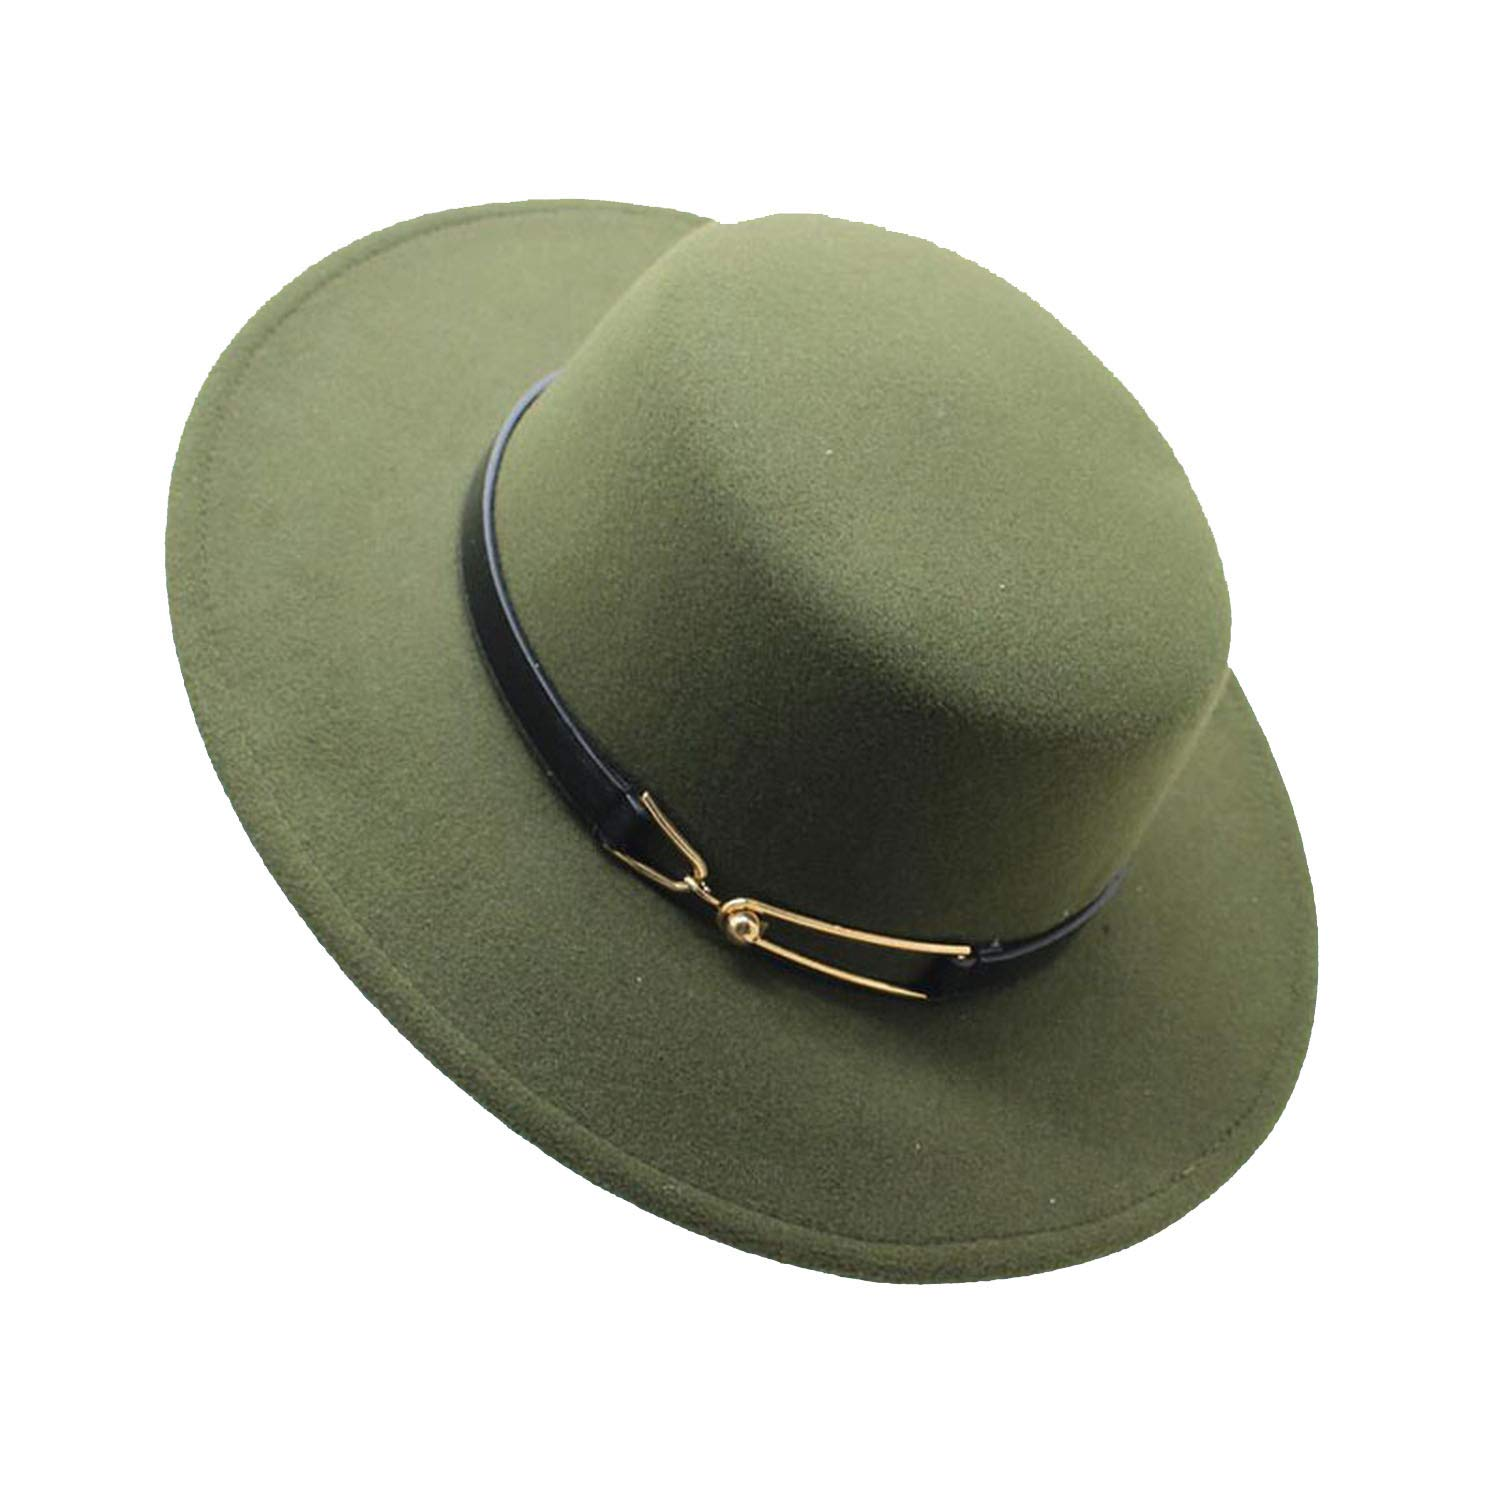 a3865a274ace17 2019 Winter Wool Pork Pie Boater Flat Top Hat for Women Men Felt Wide Brim  Fedora Player Hat at Amazon Women's Clothing store: